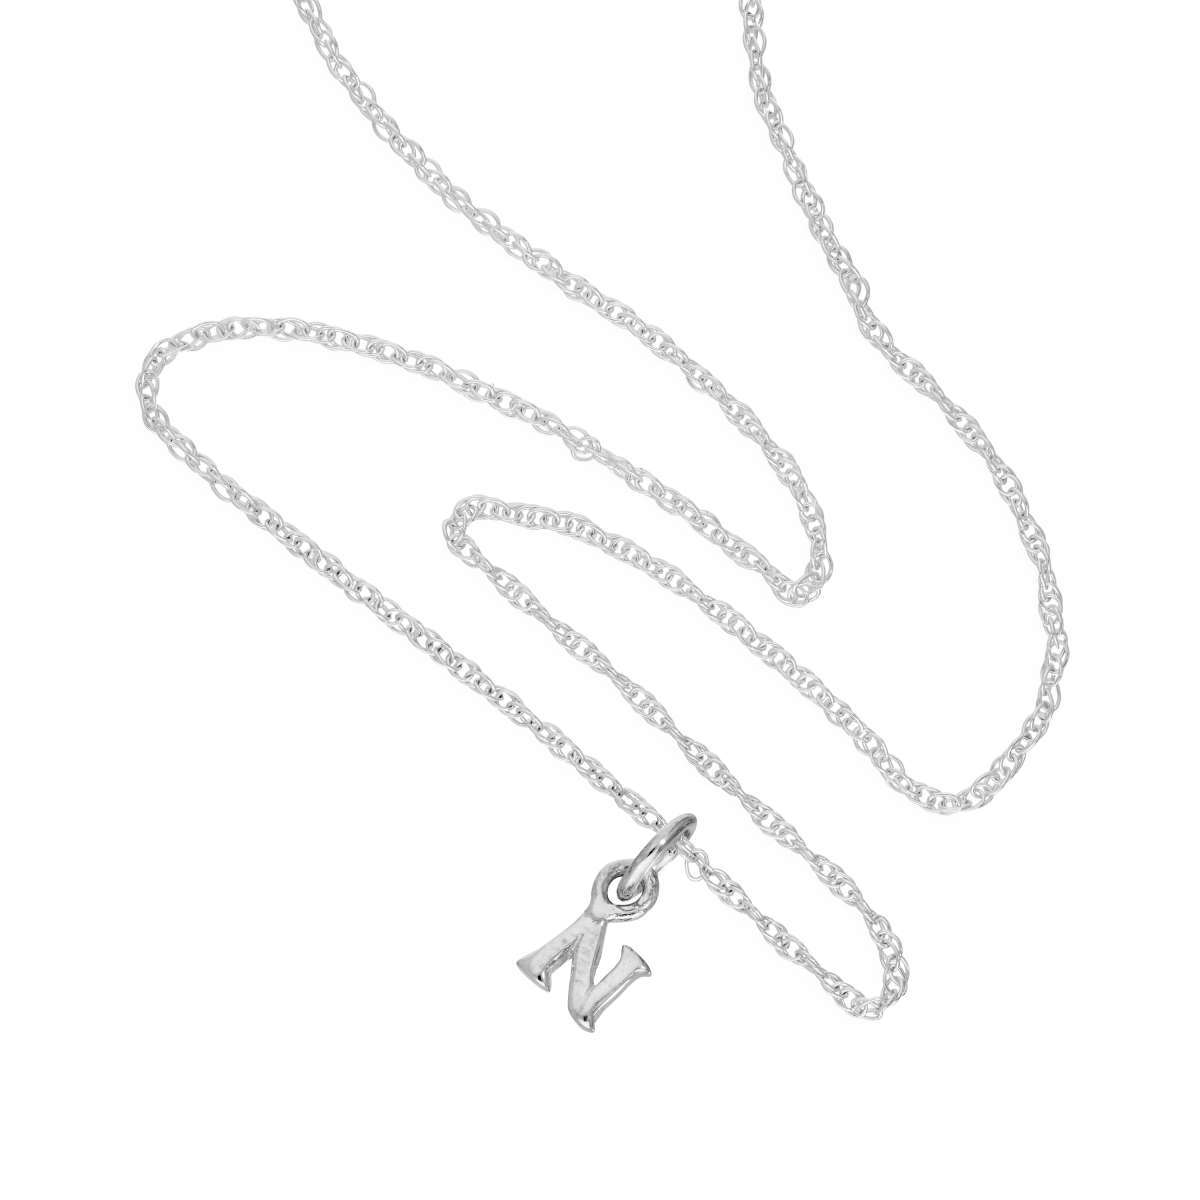 Alterative image for Tiny Sterling Silver Alphabet Letter N Pendant Necklace 14 - 22 Inches